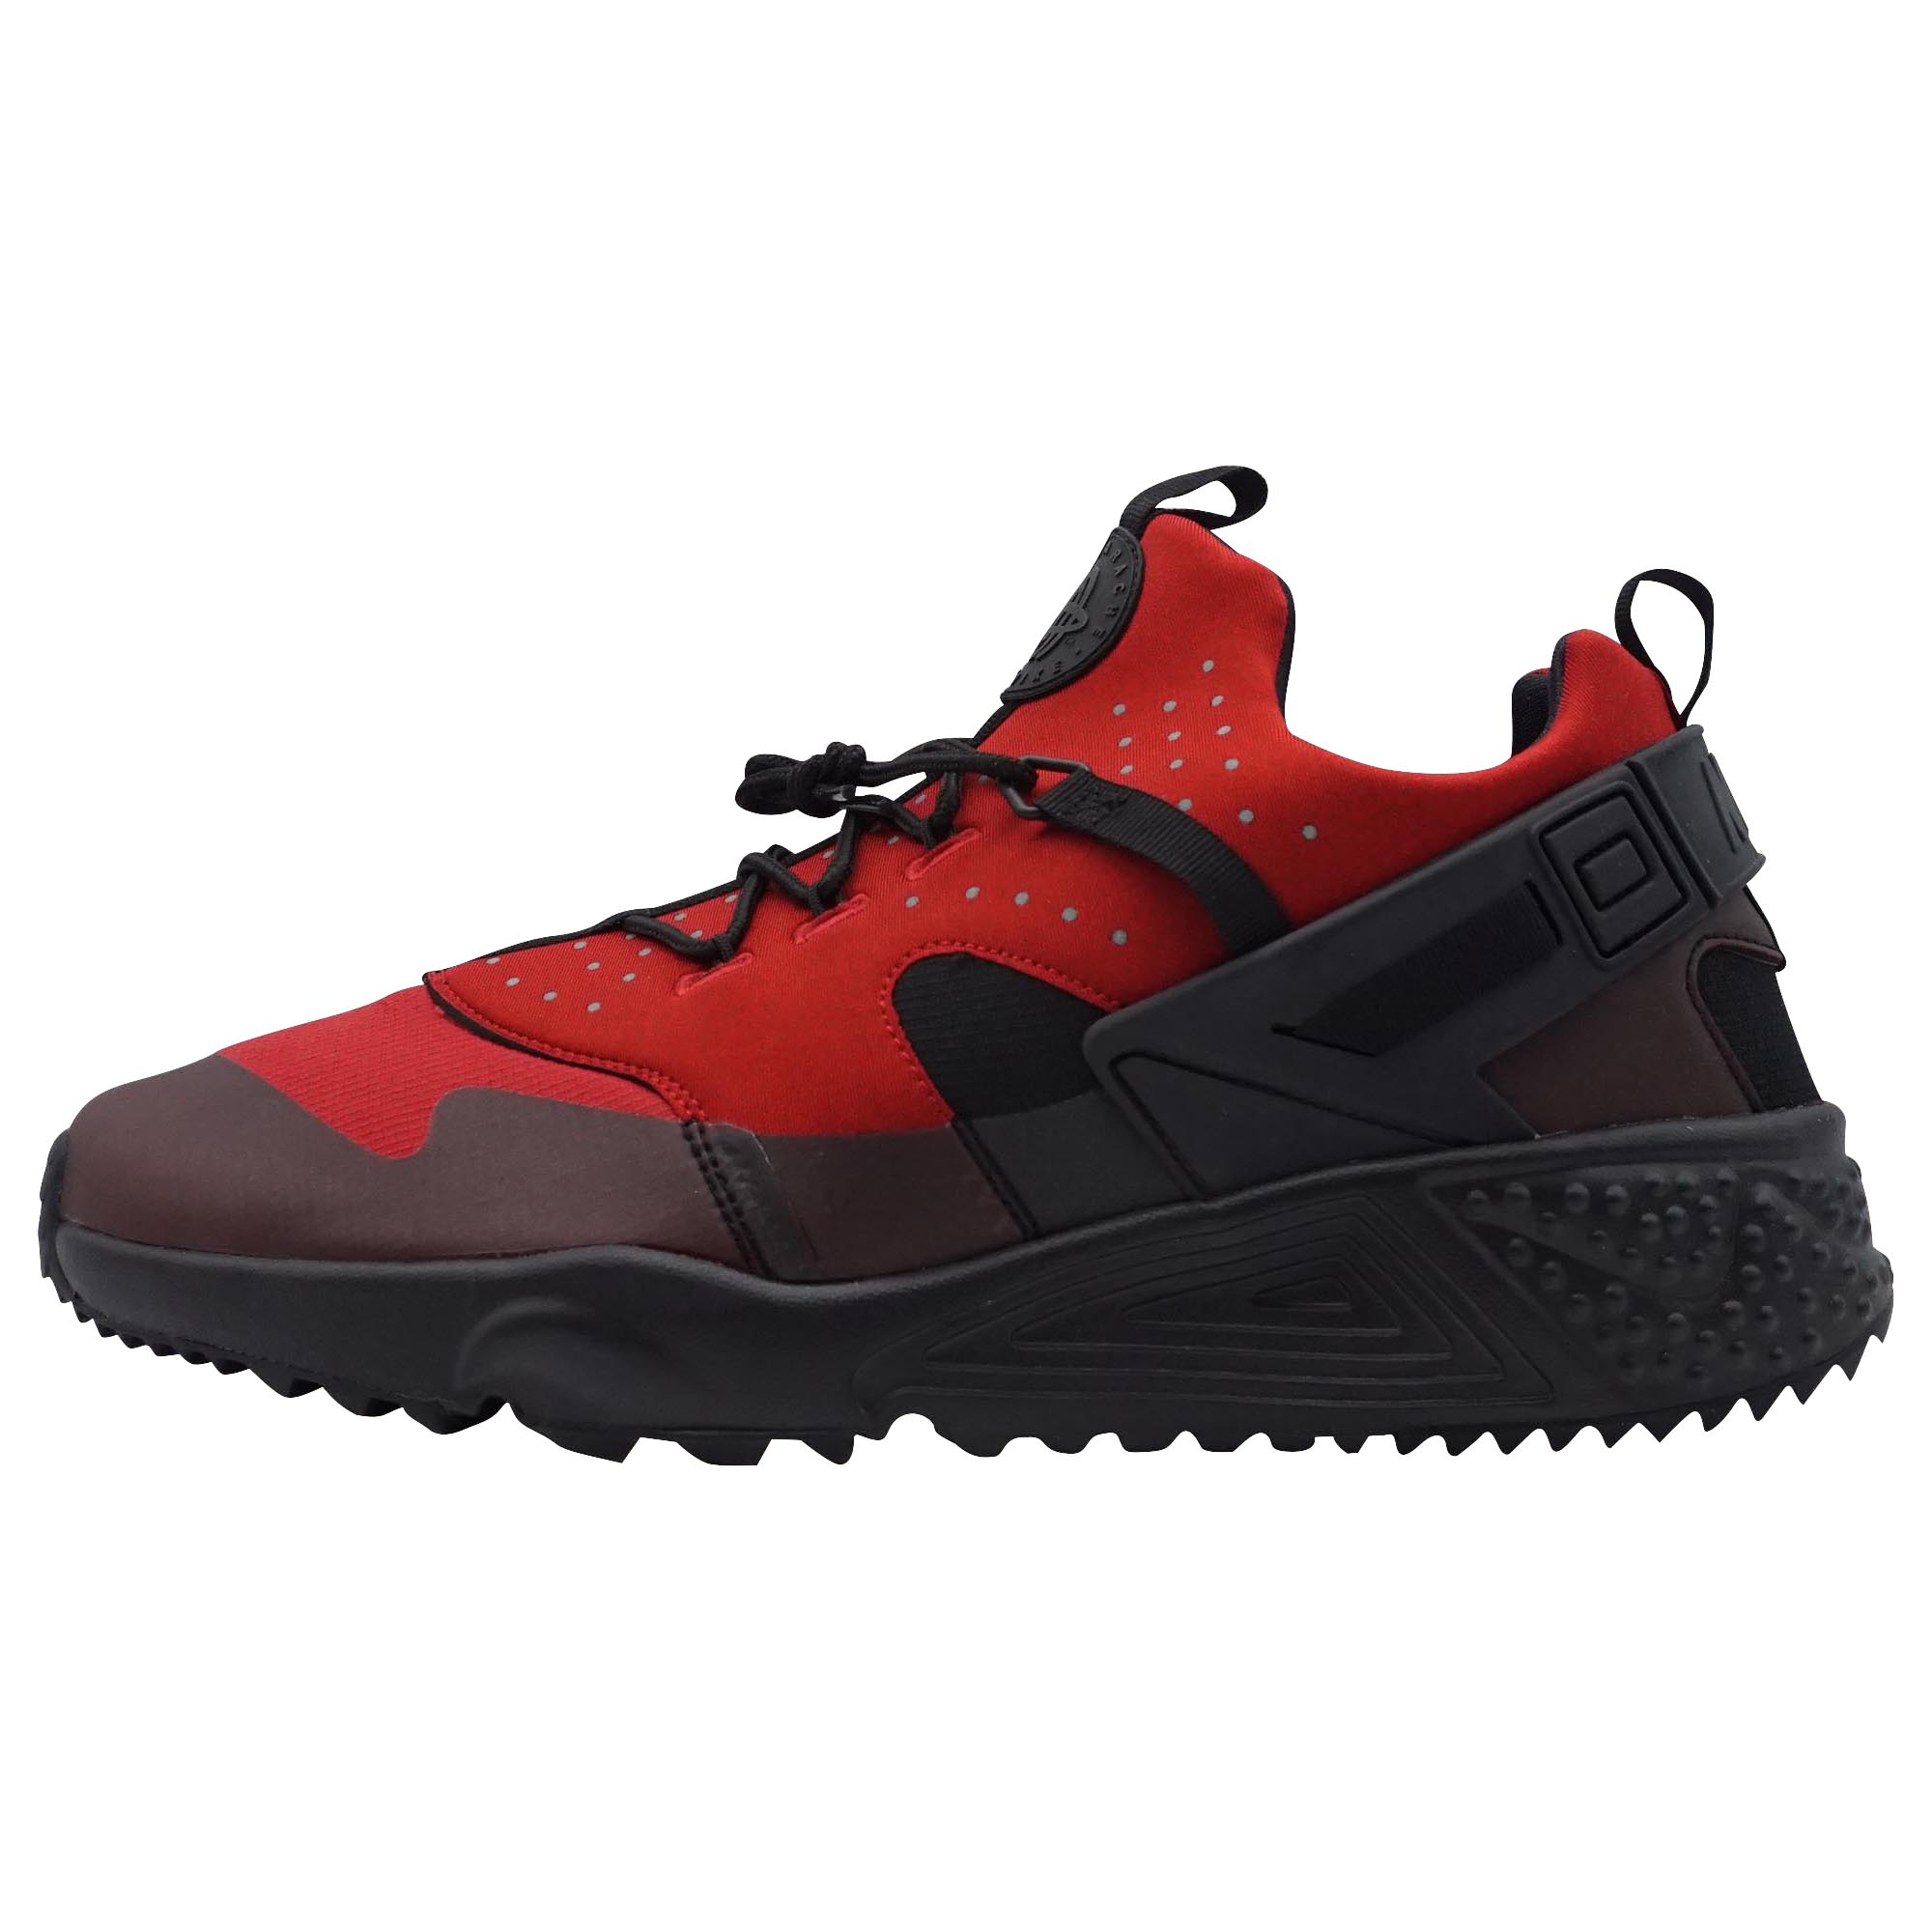 innovative design b9cf9 e7d49 ... coupon for reduced nike sportswear nike air huarache utility herren  sneaker rot f7211 0862a 28c69 24189